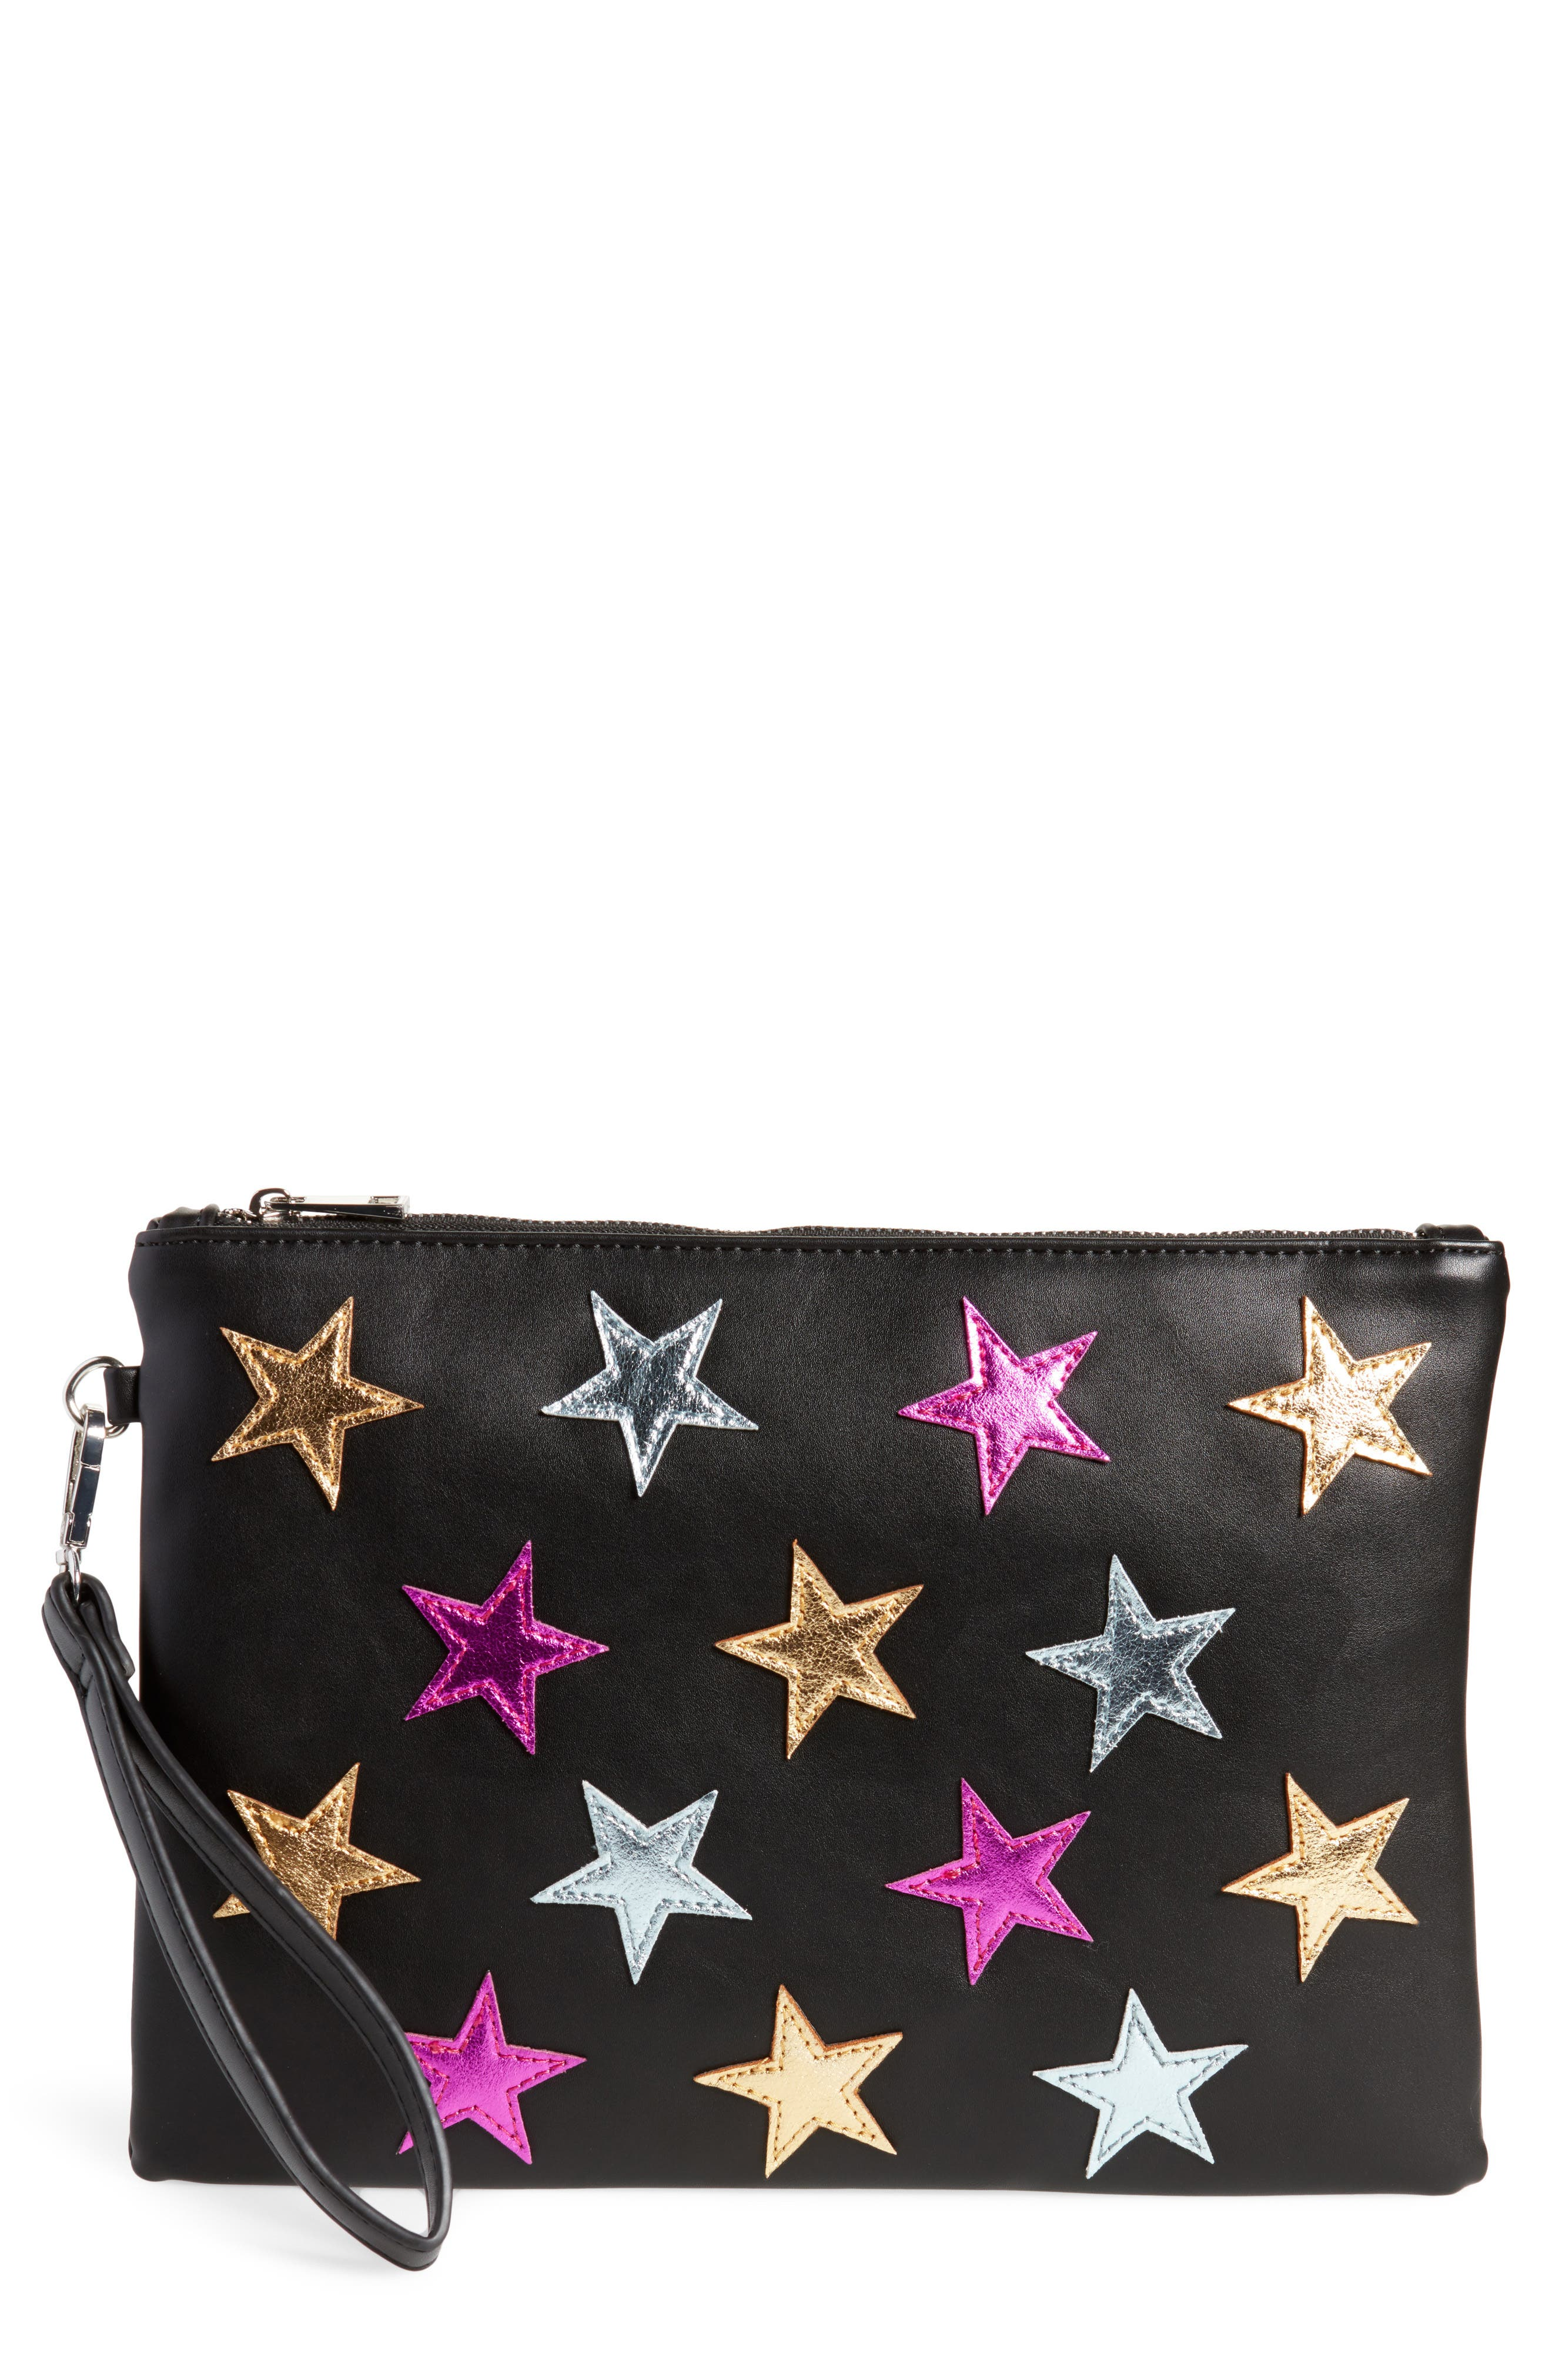 Alternate Image 1 Selected - Street Level Star Clutch